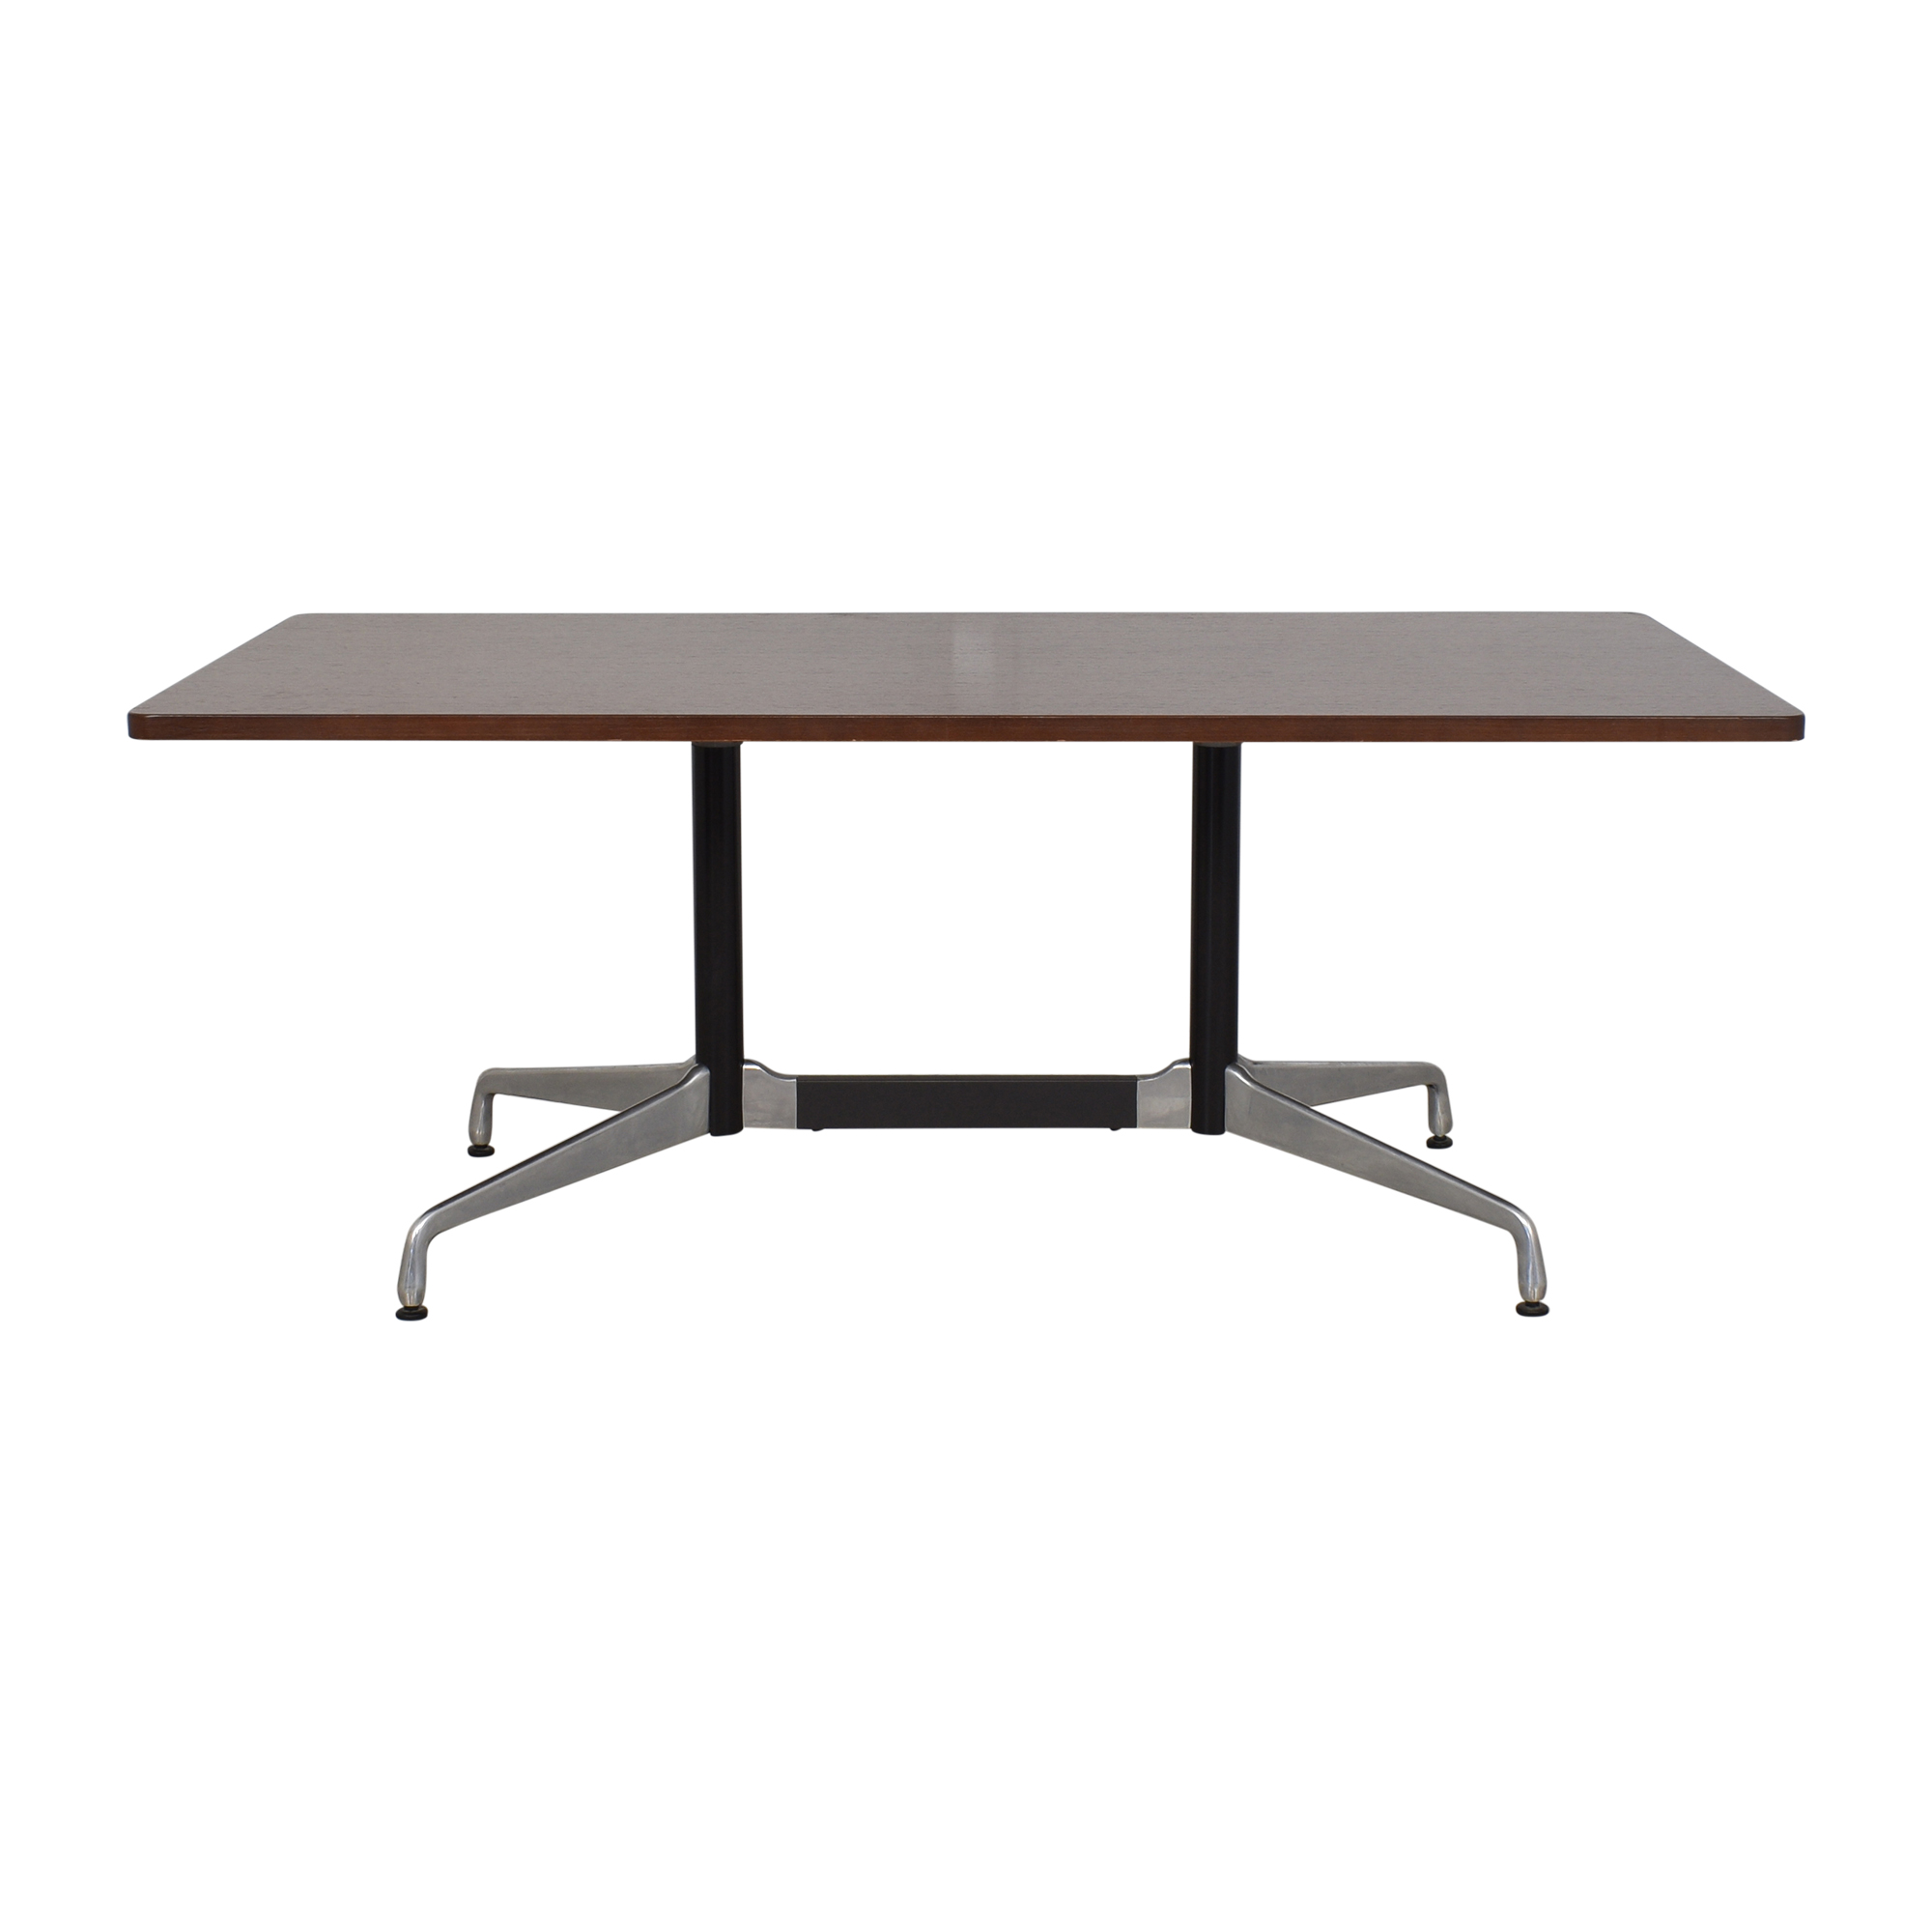 Herman Miller Herman Millier Eames Table with Rectangular Top and Segmented Base coupon